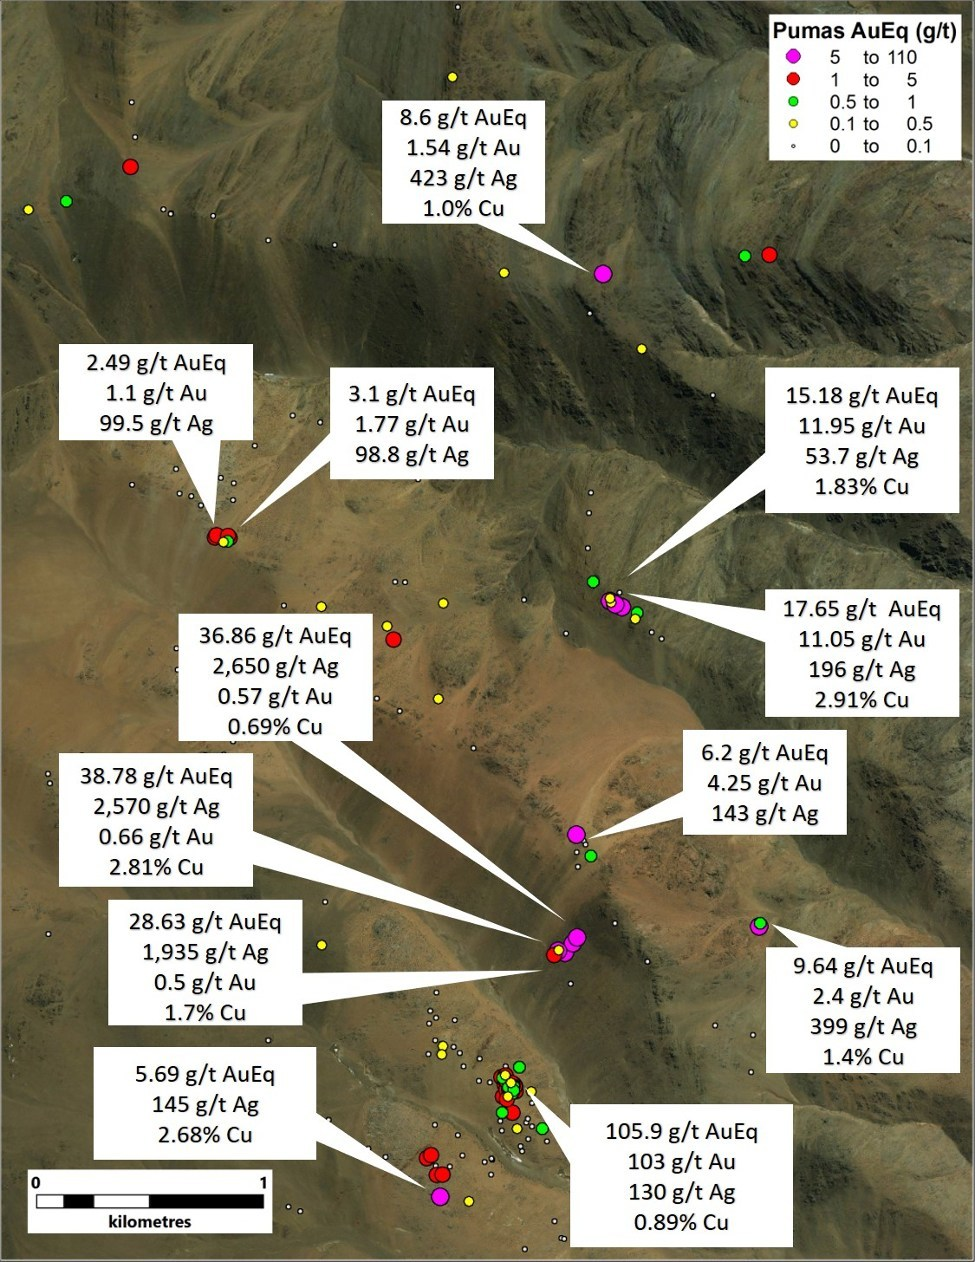 Figure 2. Highlighted results with thematic AuEq values at Los Pumas (CNW Group/Sable Resources Ltd.)